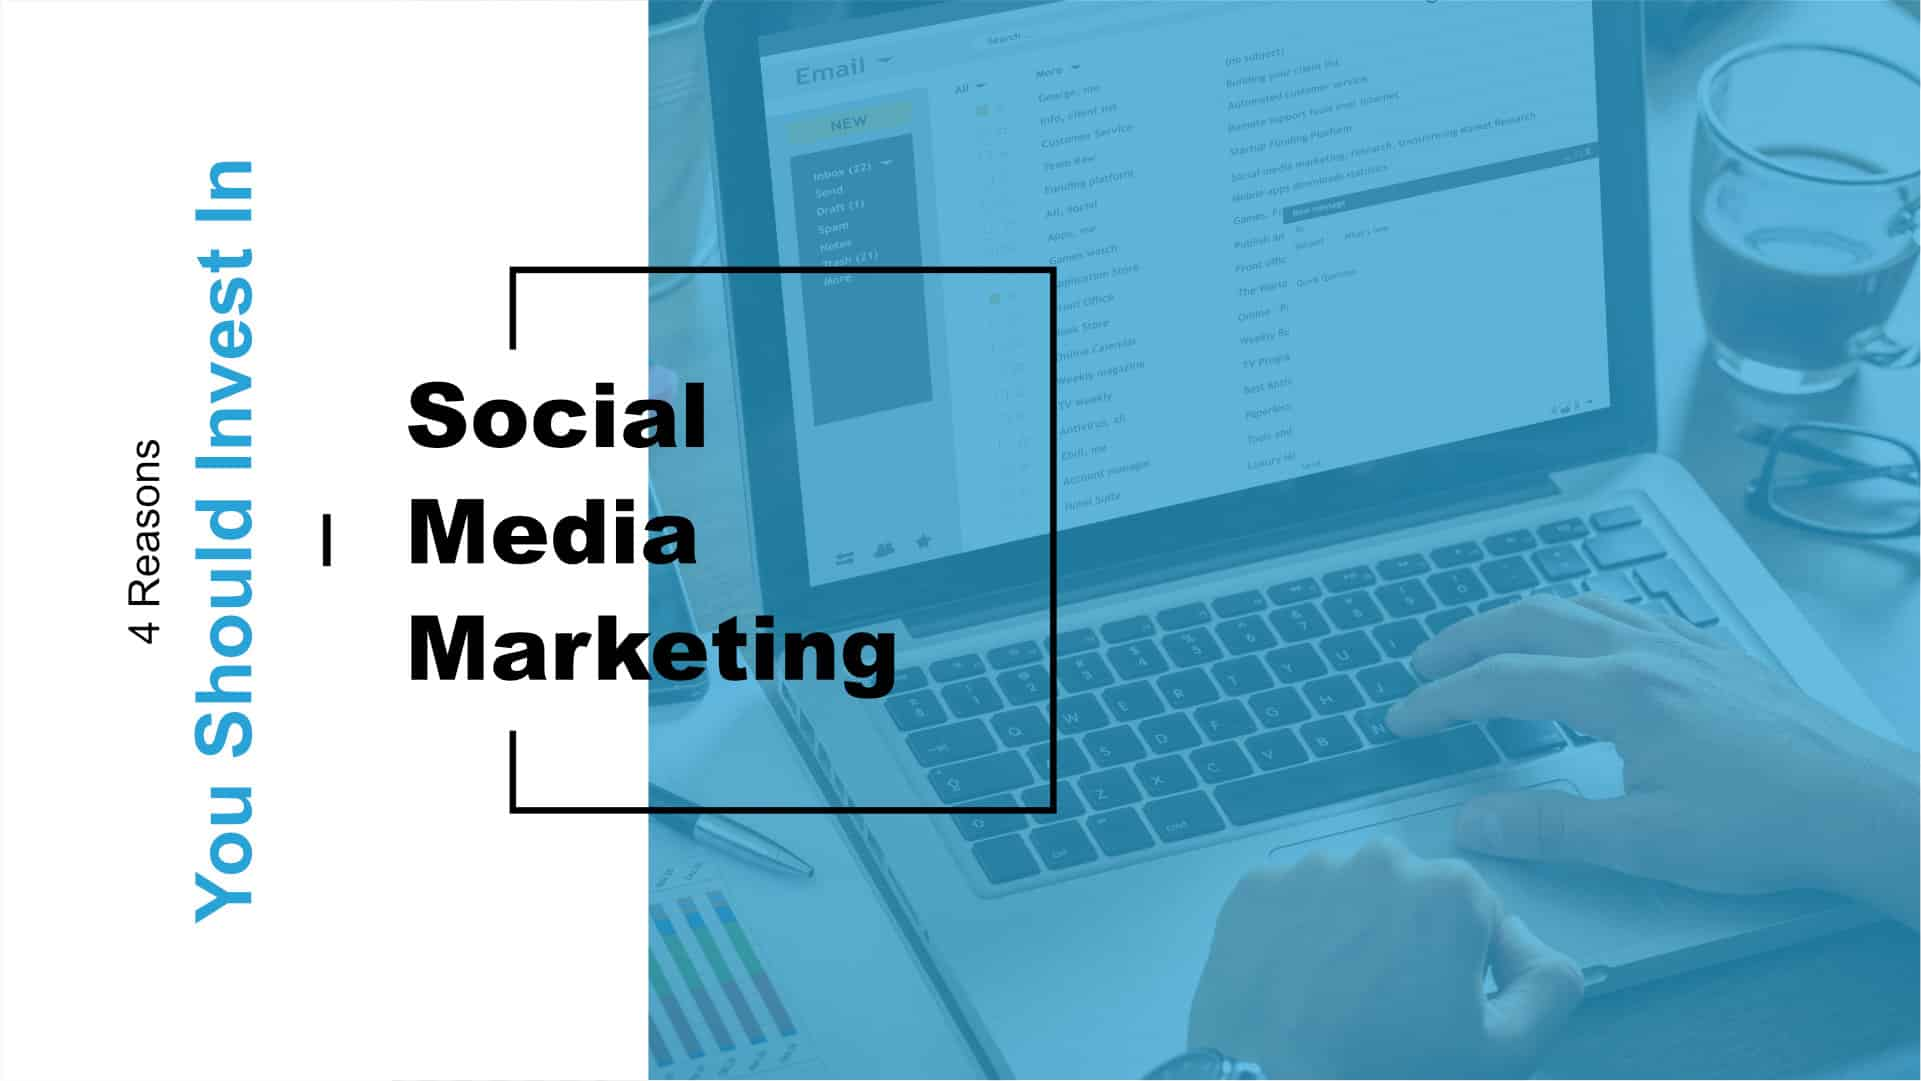 4 Reasons to Use Social Media Marketing Featured Image